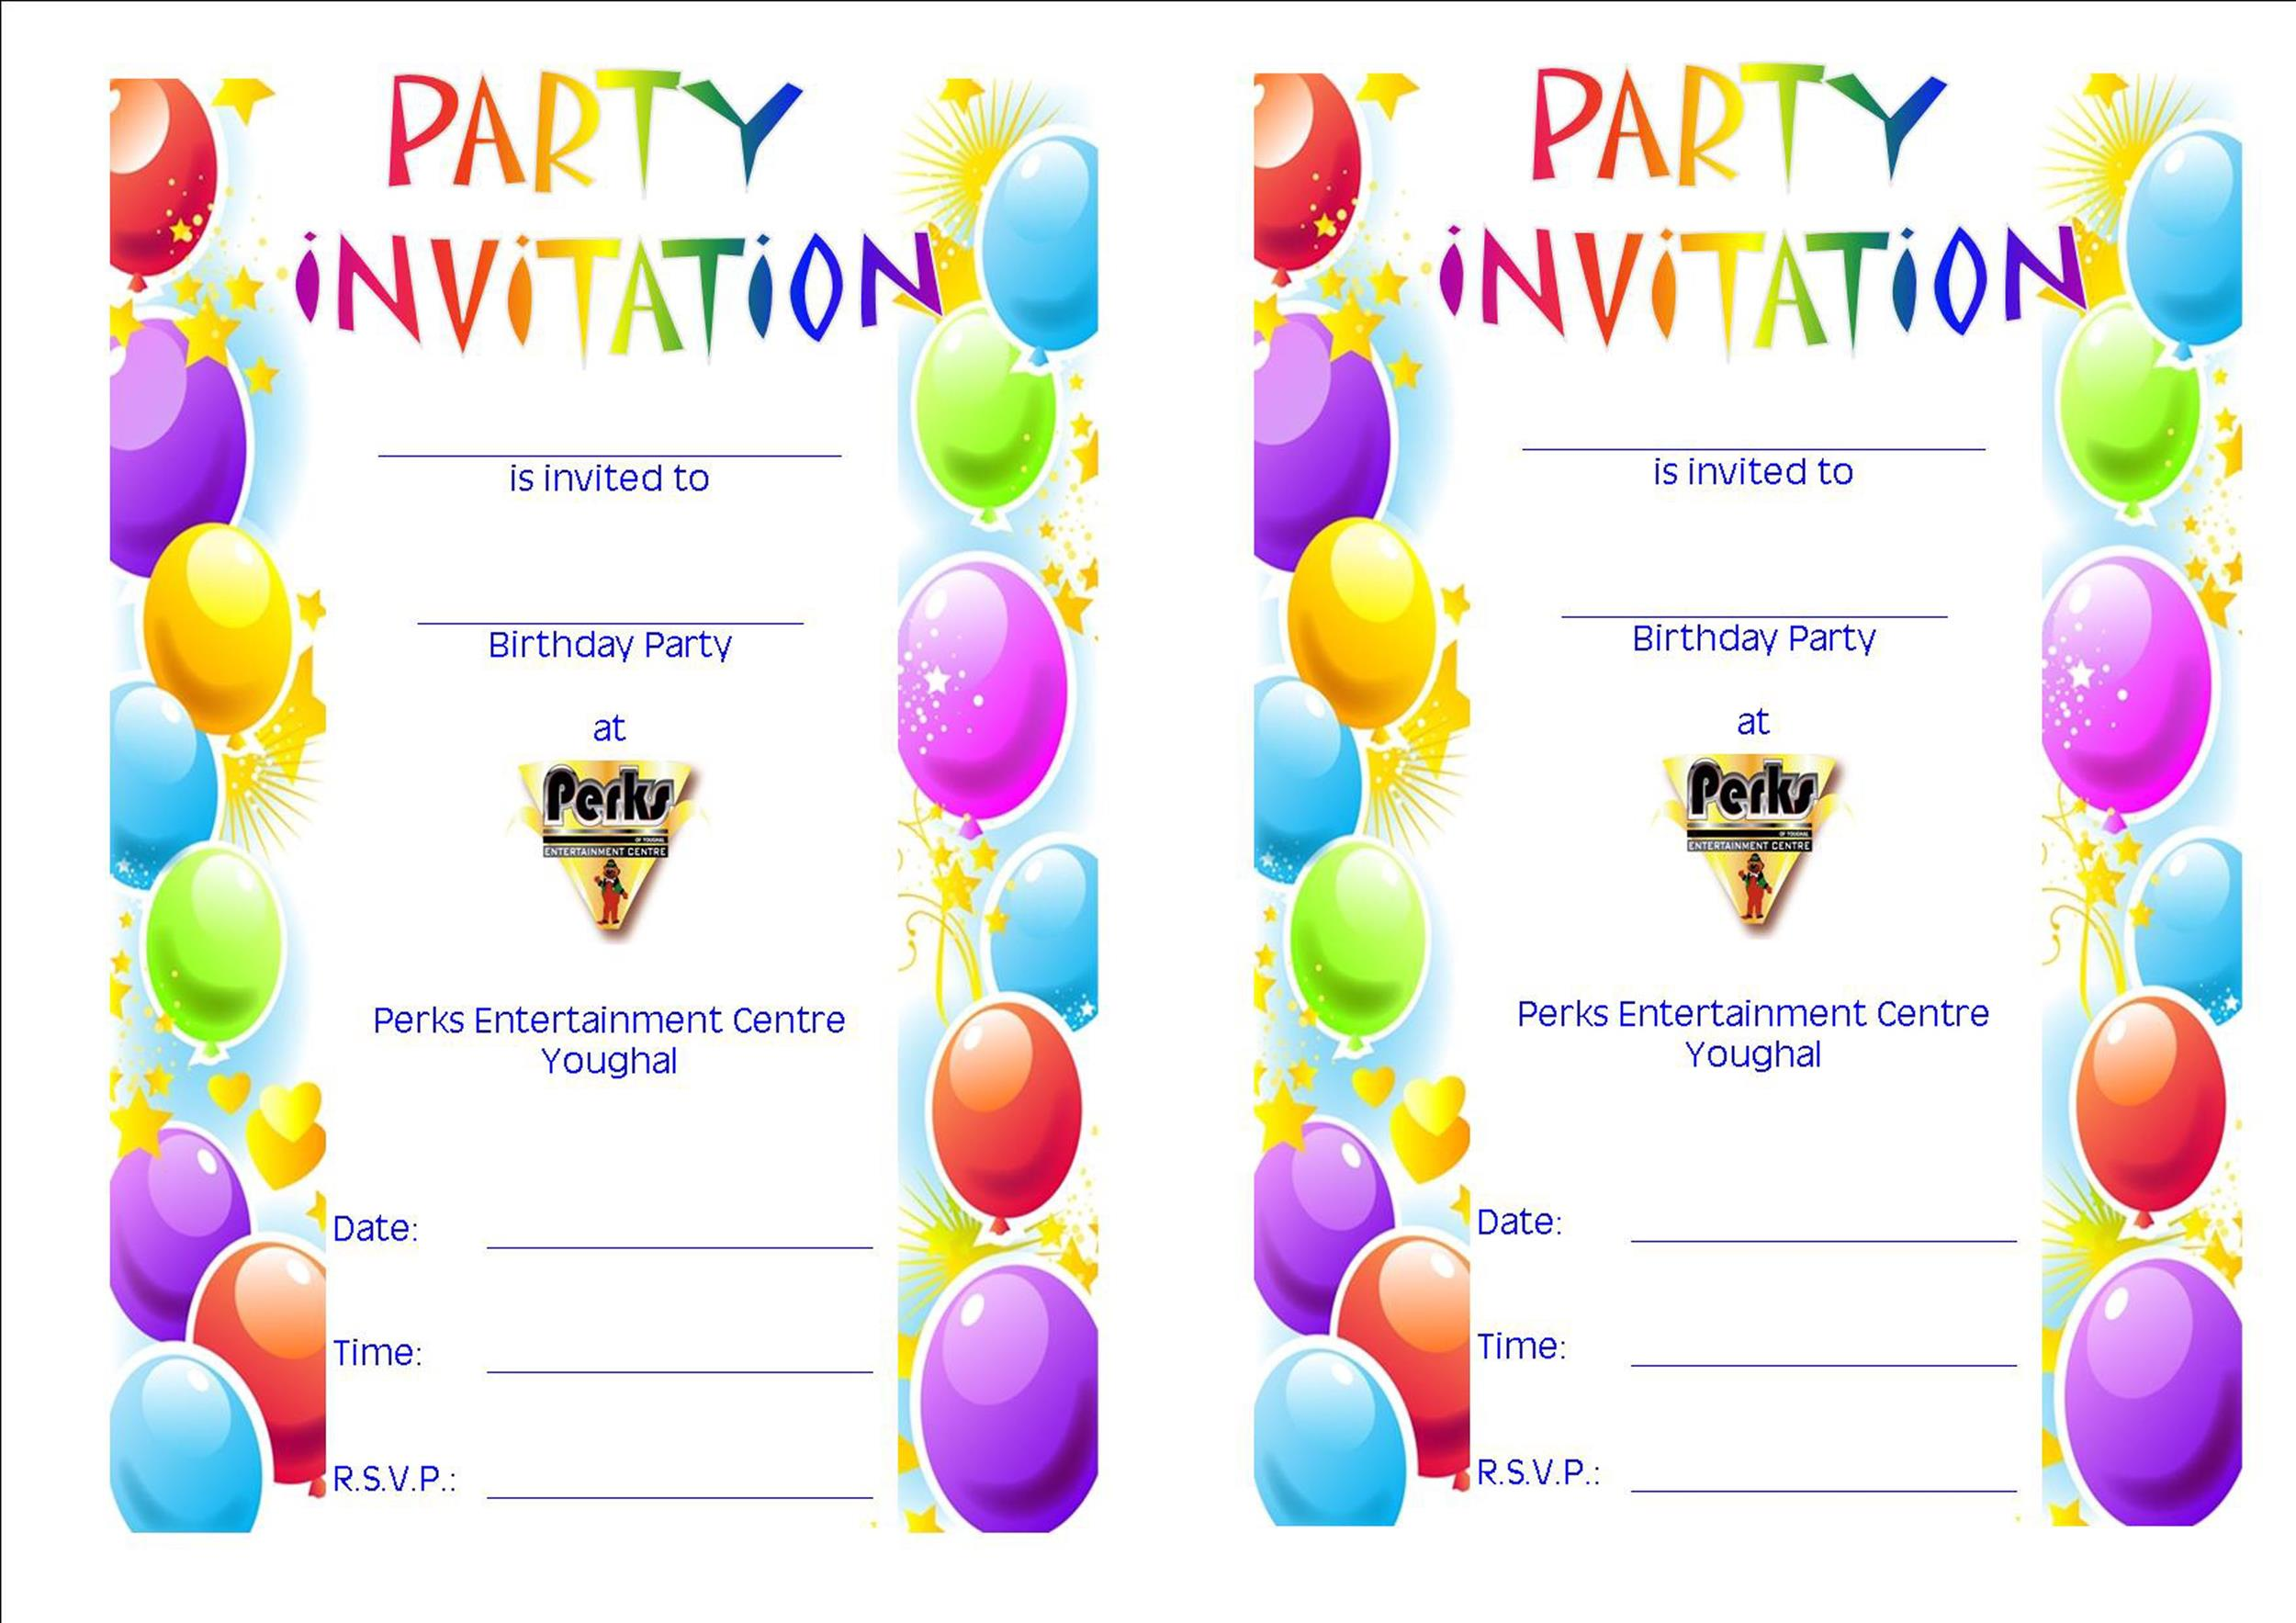 Free Birthday Party Invitation Templates Template Lab - Free photo party invitation templates